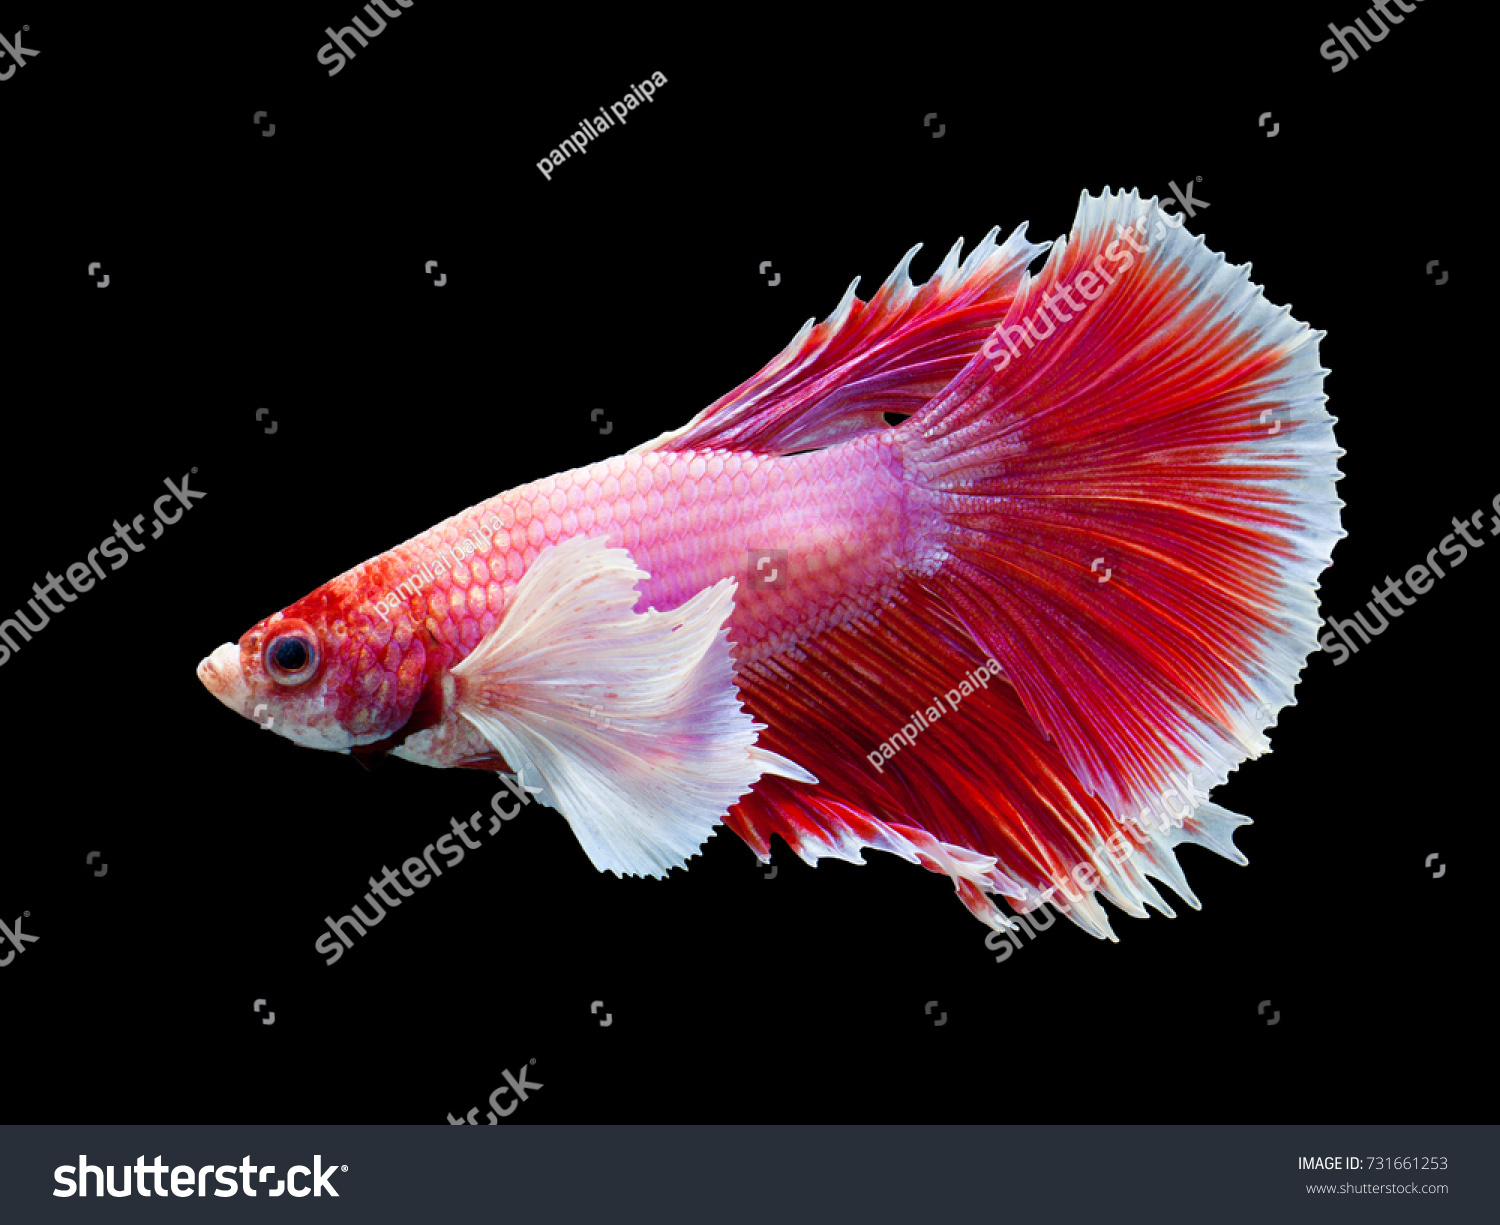 red fighting fish on black background | EZ Canvas